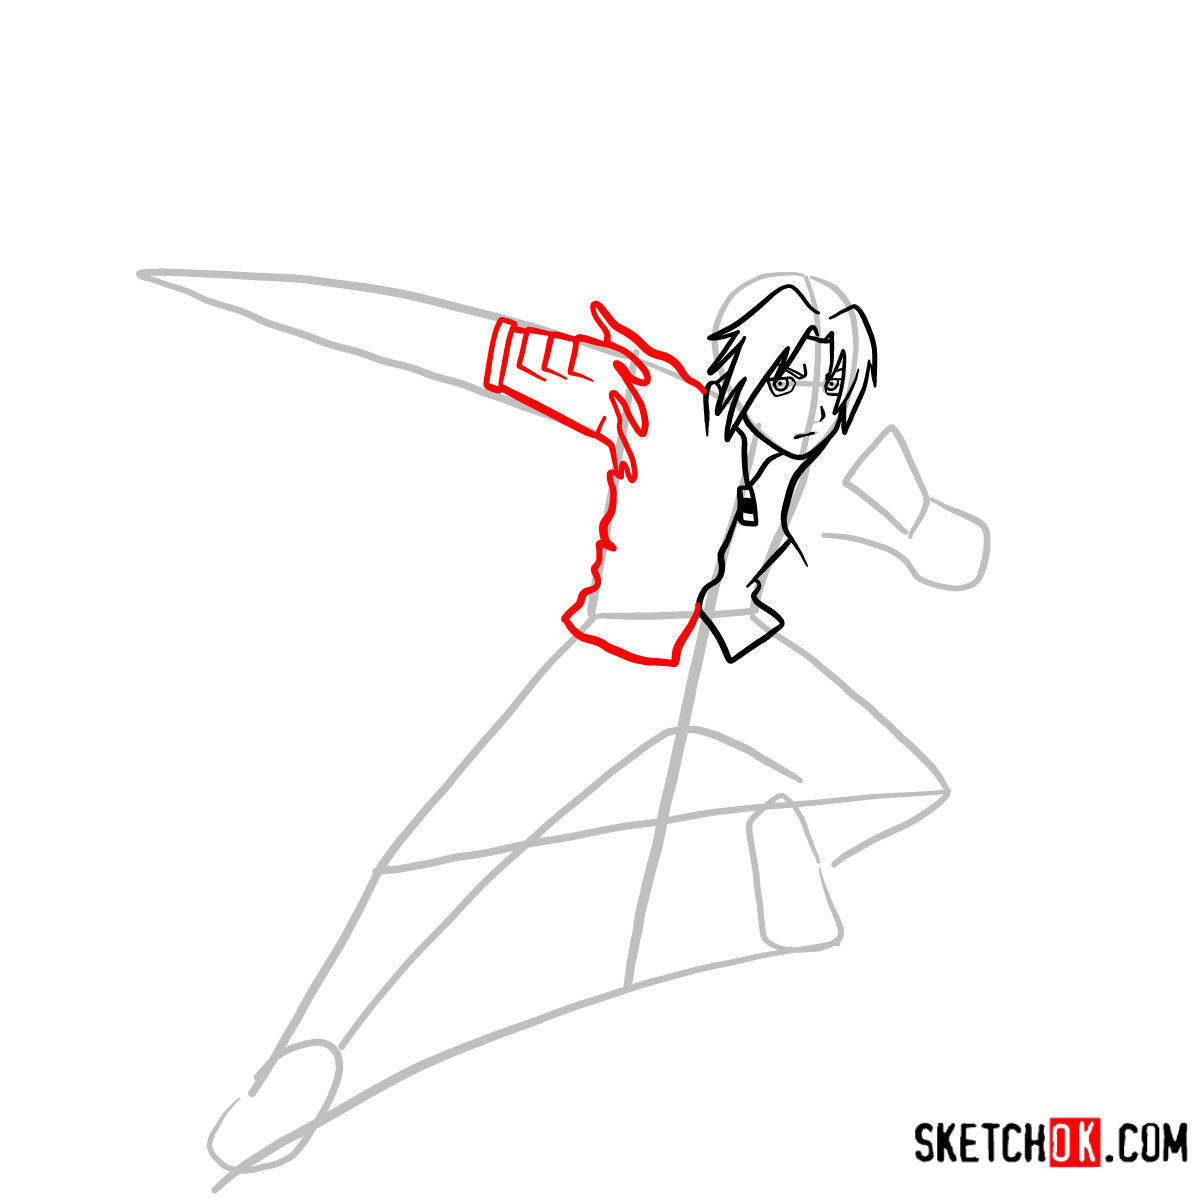 How to draw Edward Elric in a fight | Fullmetal Alchemist - step 06